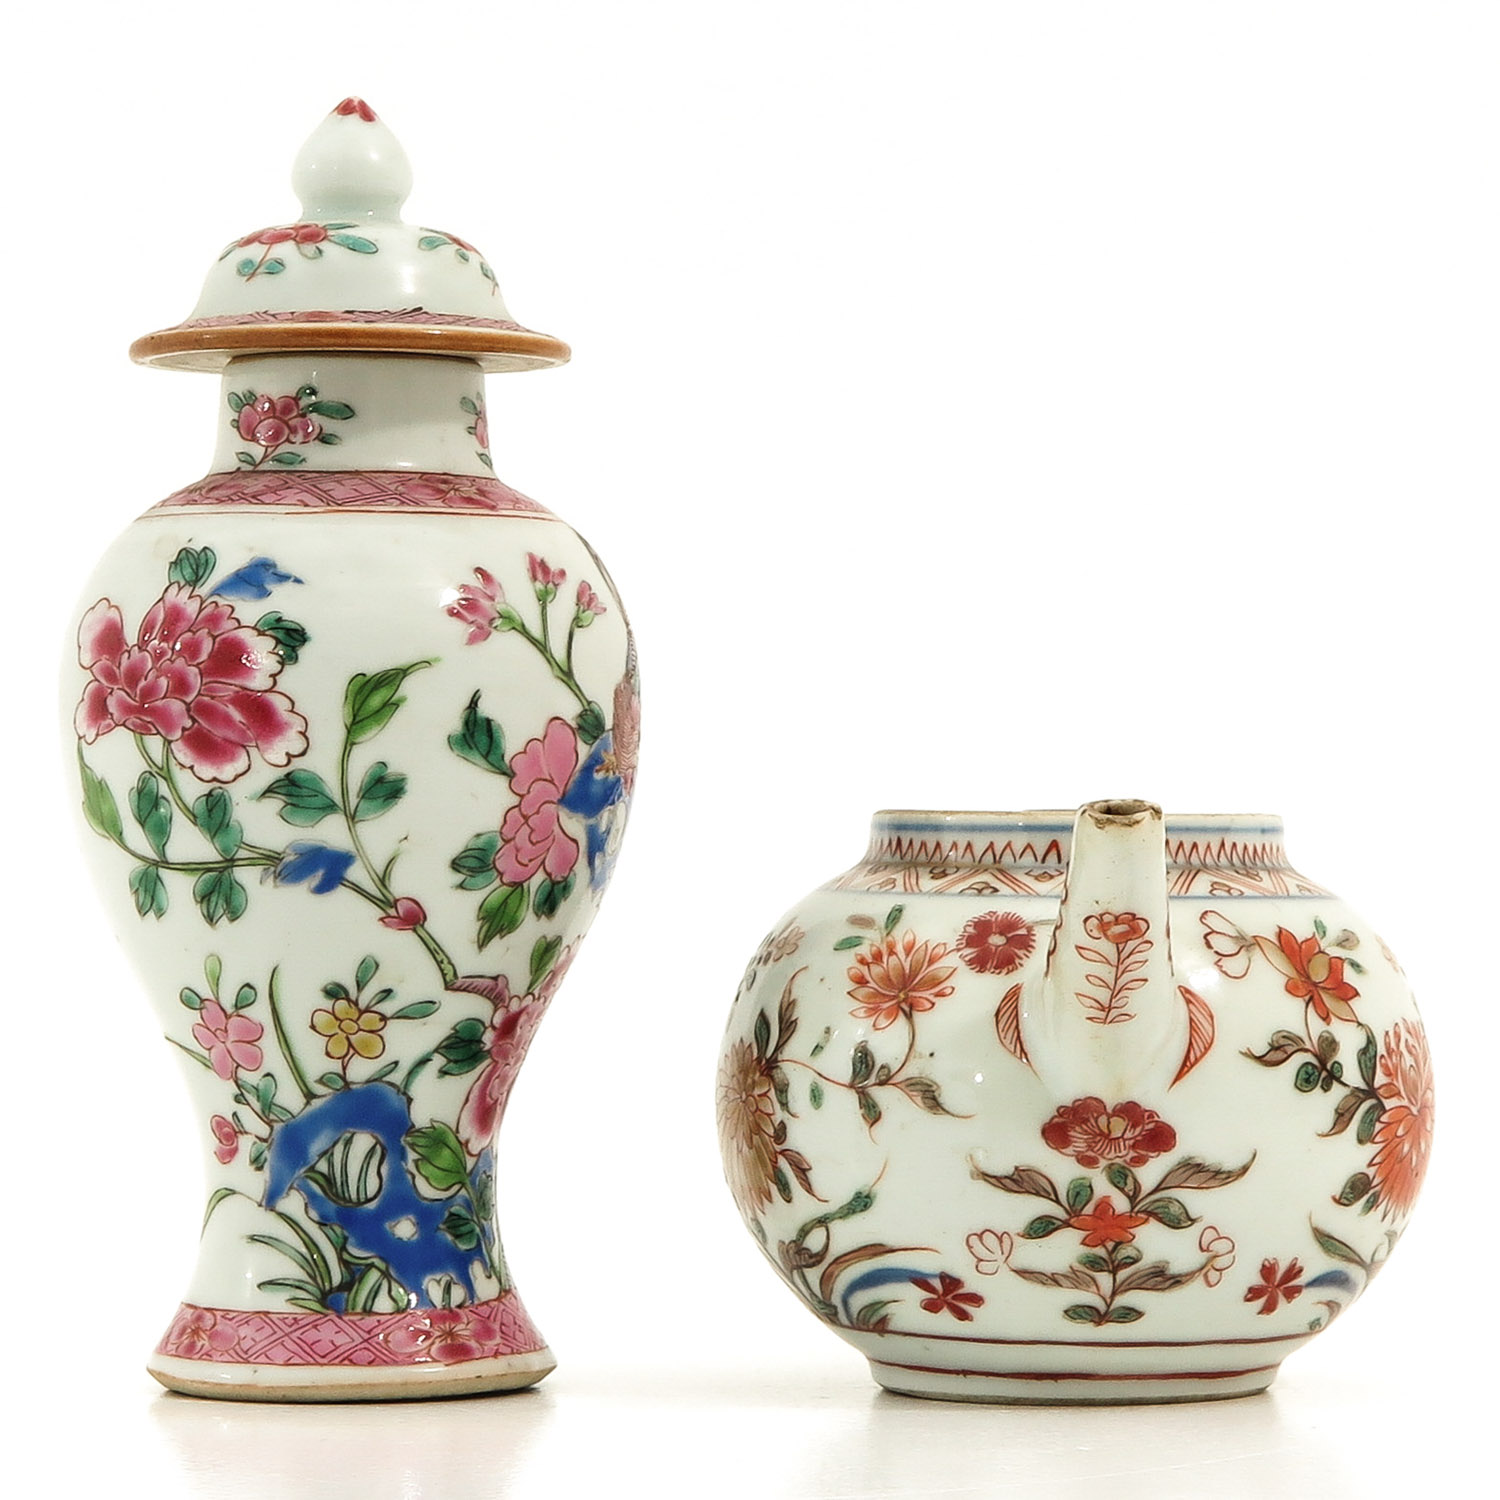 A Famille Rose Vase and Teapot - Image 4 of 9